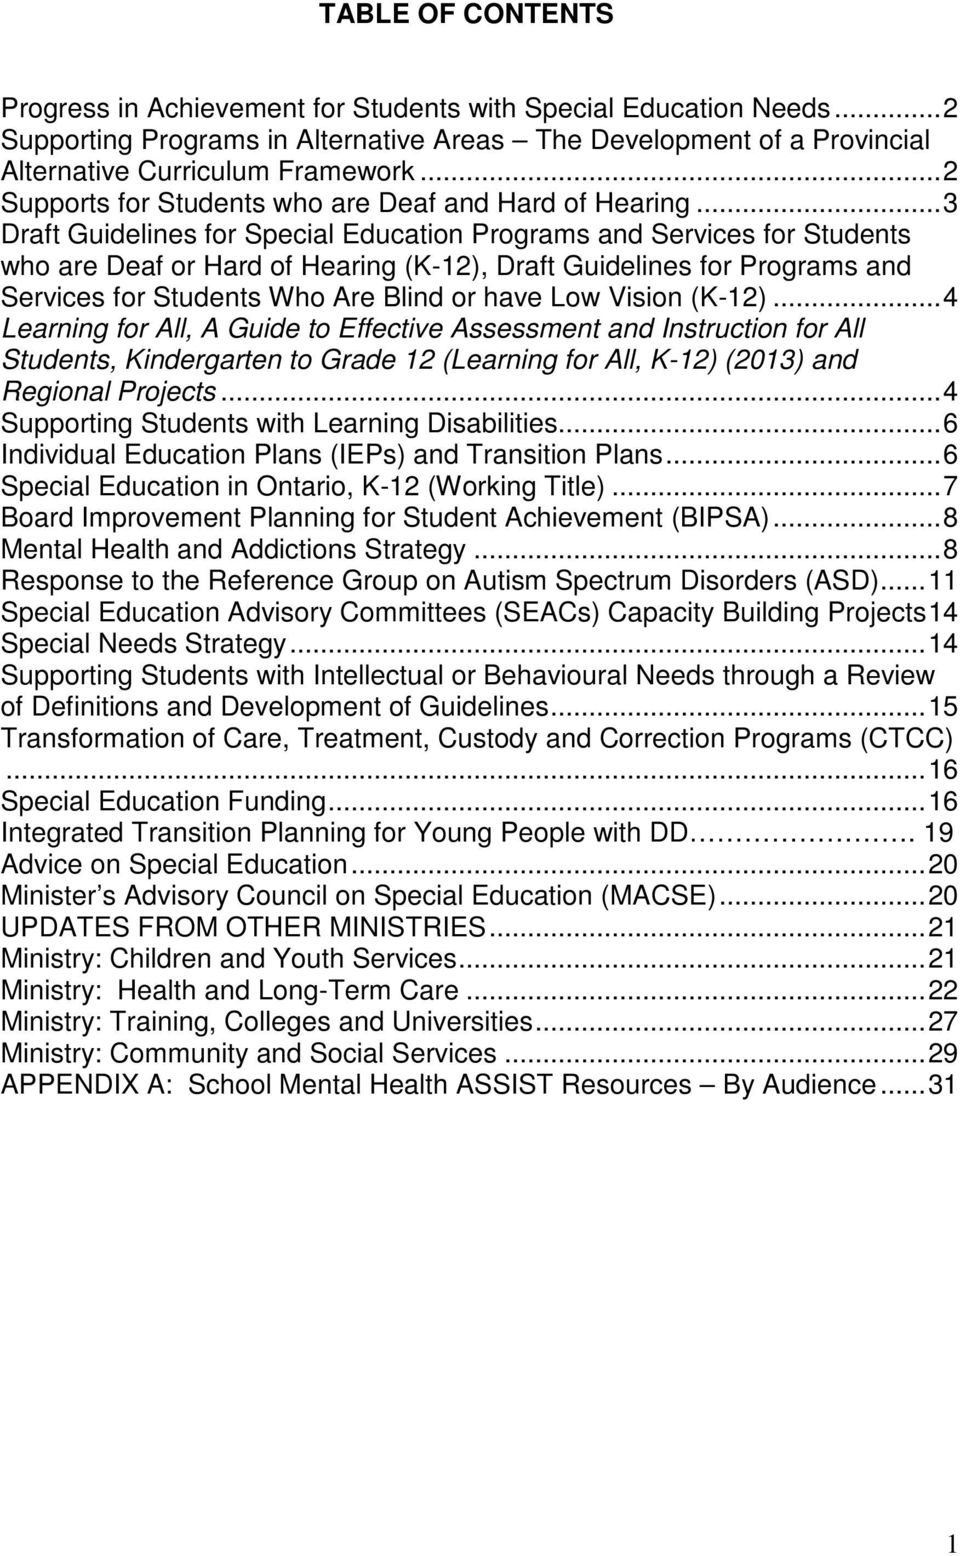 .. 3 Draft Guidelines for Special Education Programs and Services for Students who are Deaf or Hard of Hearing (K-12), Draft Guidelines for Programs and Services for Students Who Are Blind or have